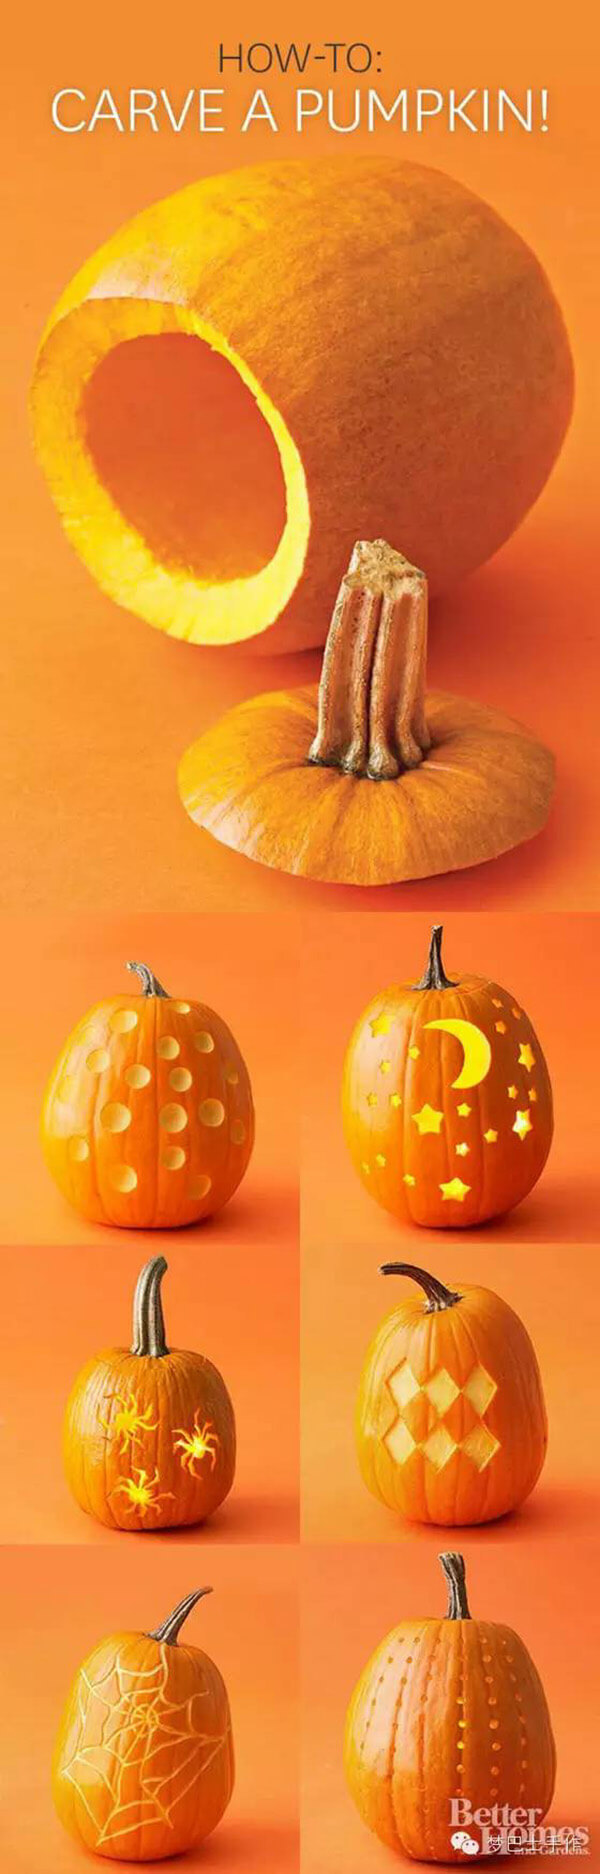 53 Best Pumpkin Carving Ideas And Designs For 2020